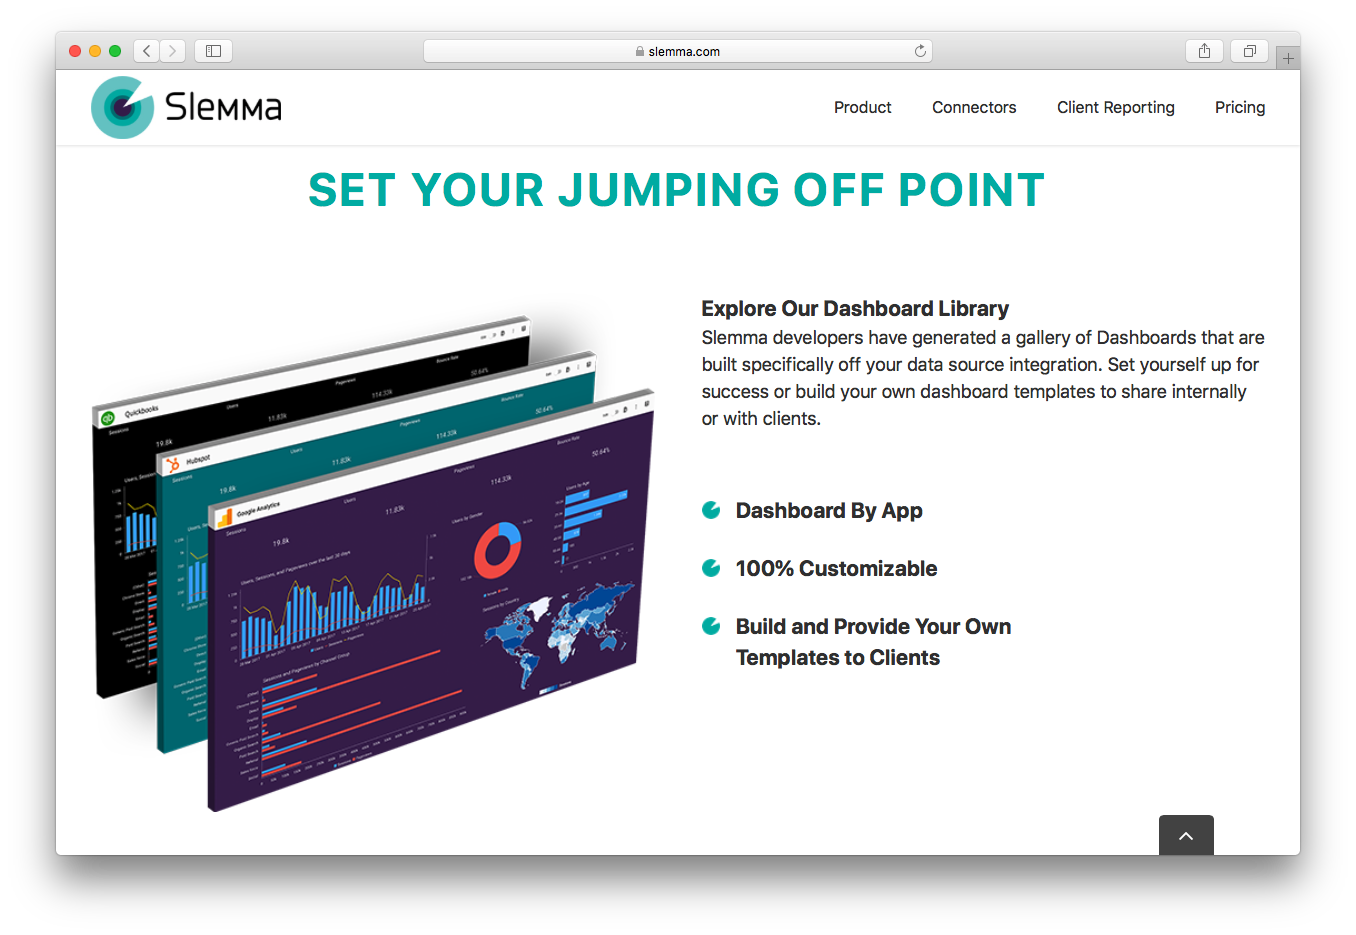 Slemma dashboard library templates by app third party integration